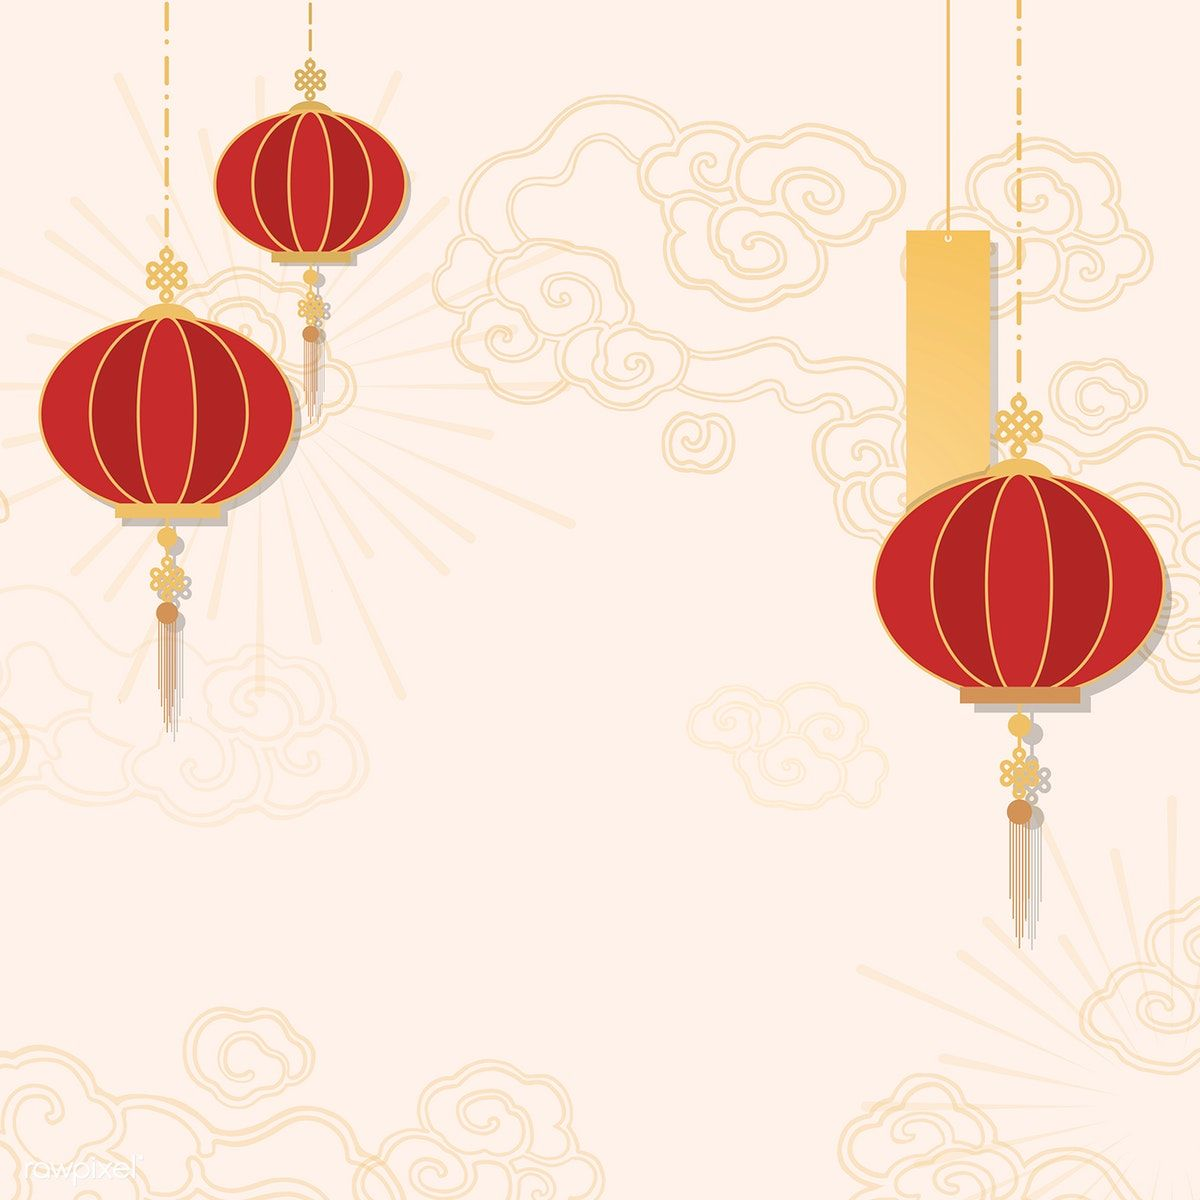 chinese new year 2019 greeting background free image by rawpixel com kappy kappy chinese new year background chinese background vector free chinese new year 2019 greeting